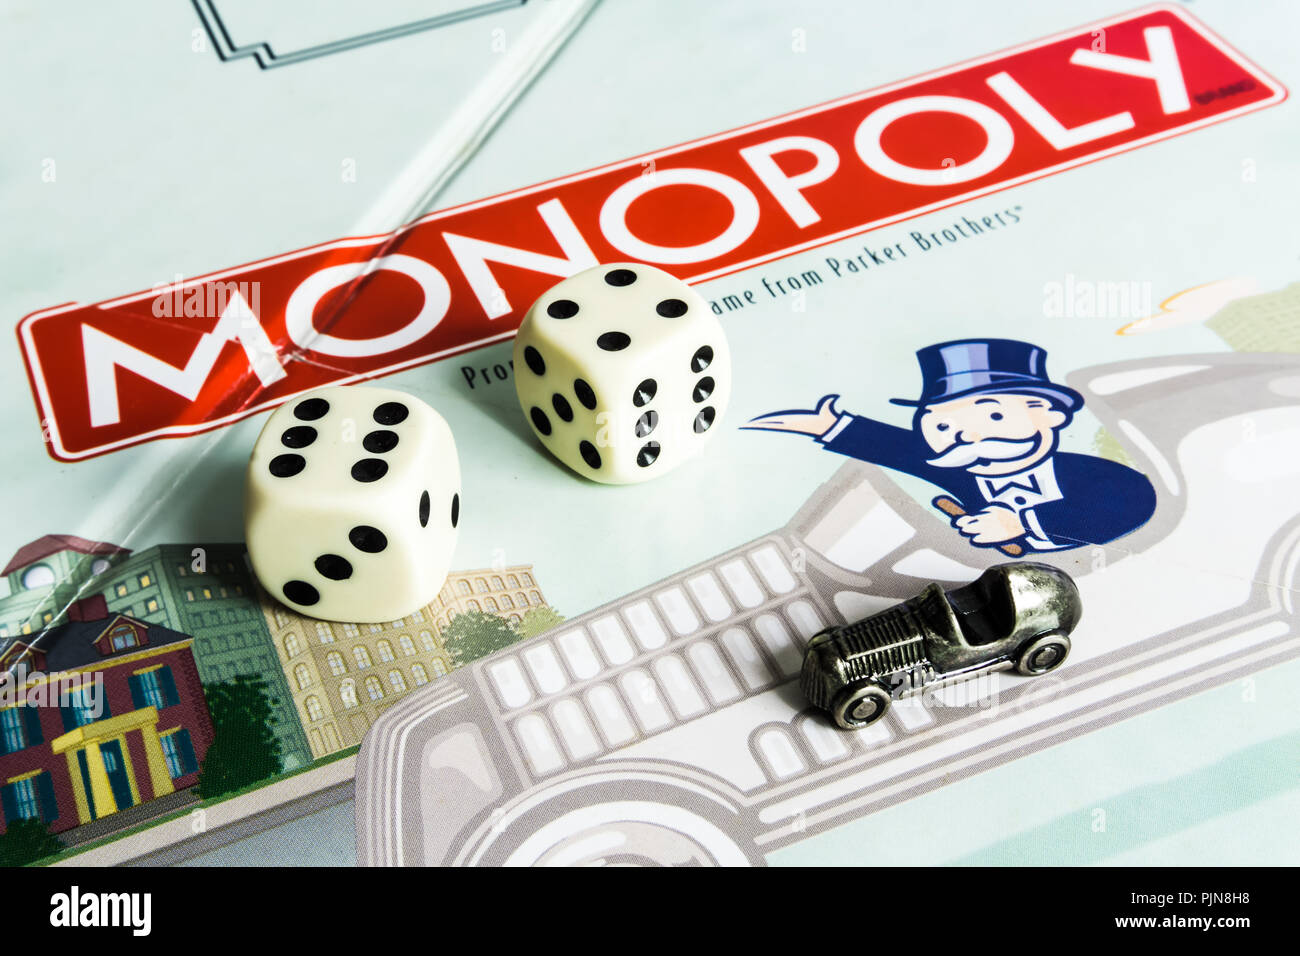 Monopoly Board Game close up with the box, board and dices. The classic real estate trading game from Parker Brothers - Stock Image